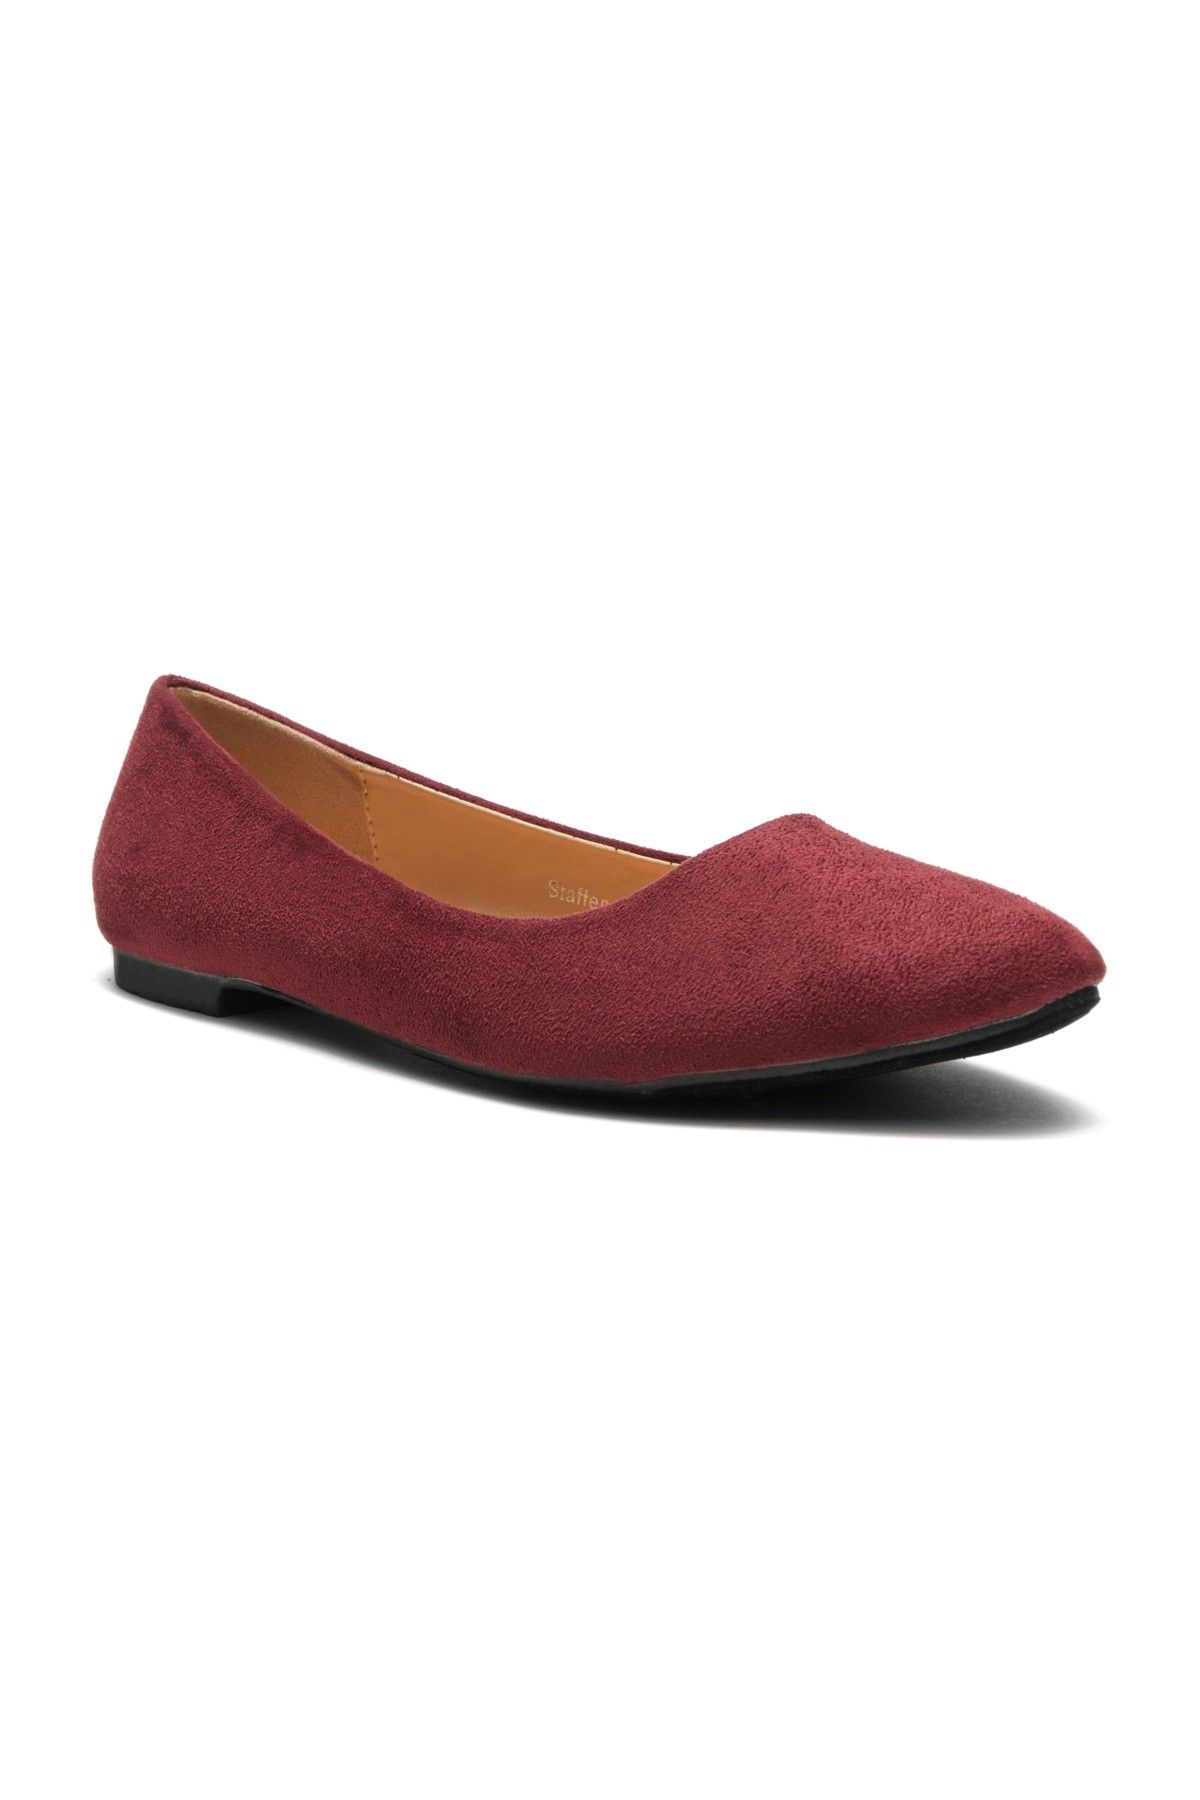 d9bcc242ae HerStyle Women's Manmade Nstaffno Simple Faux Suede Pointy Toe Flats  (Burgundy)